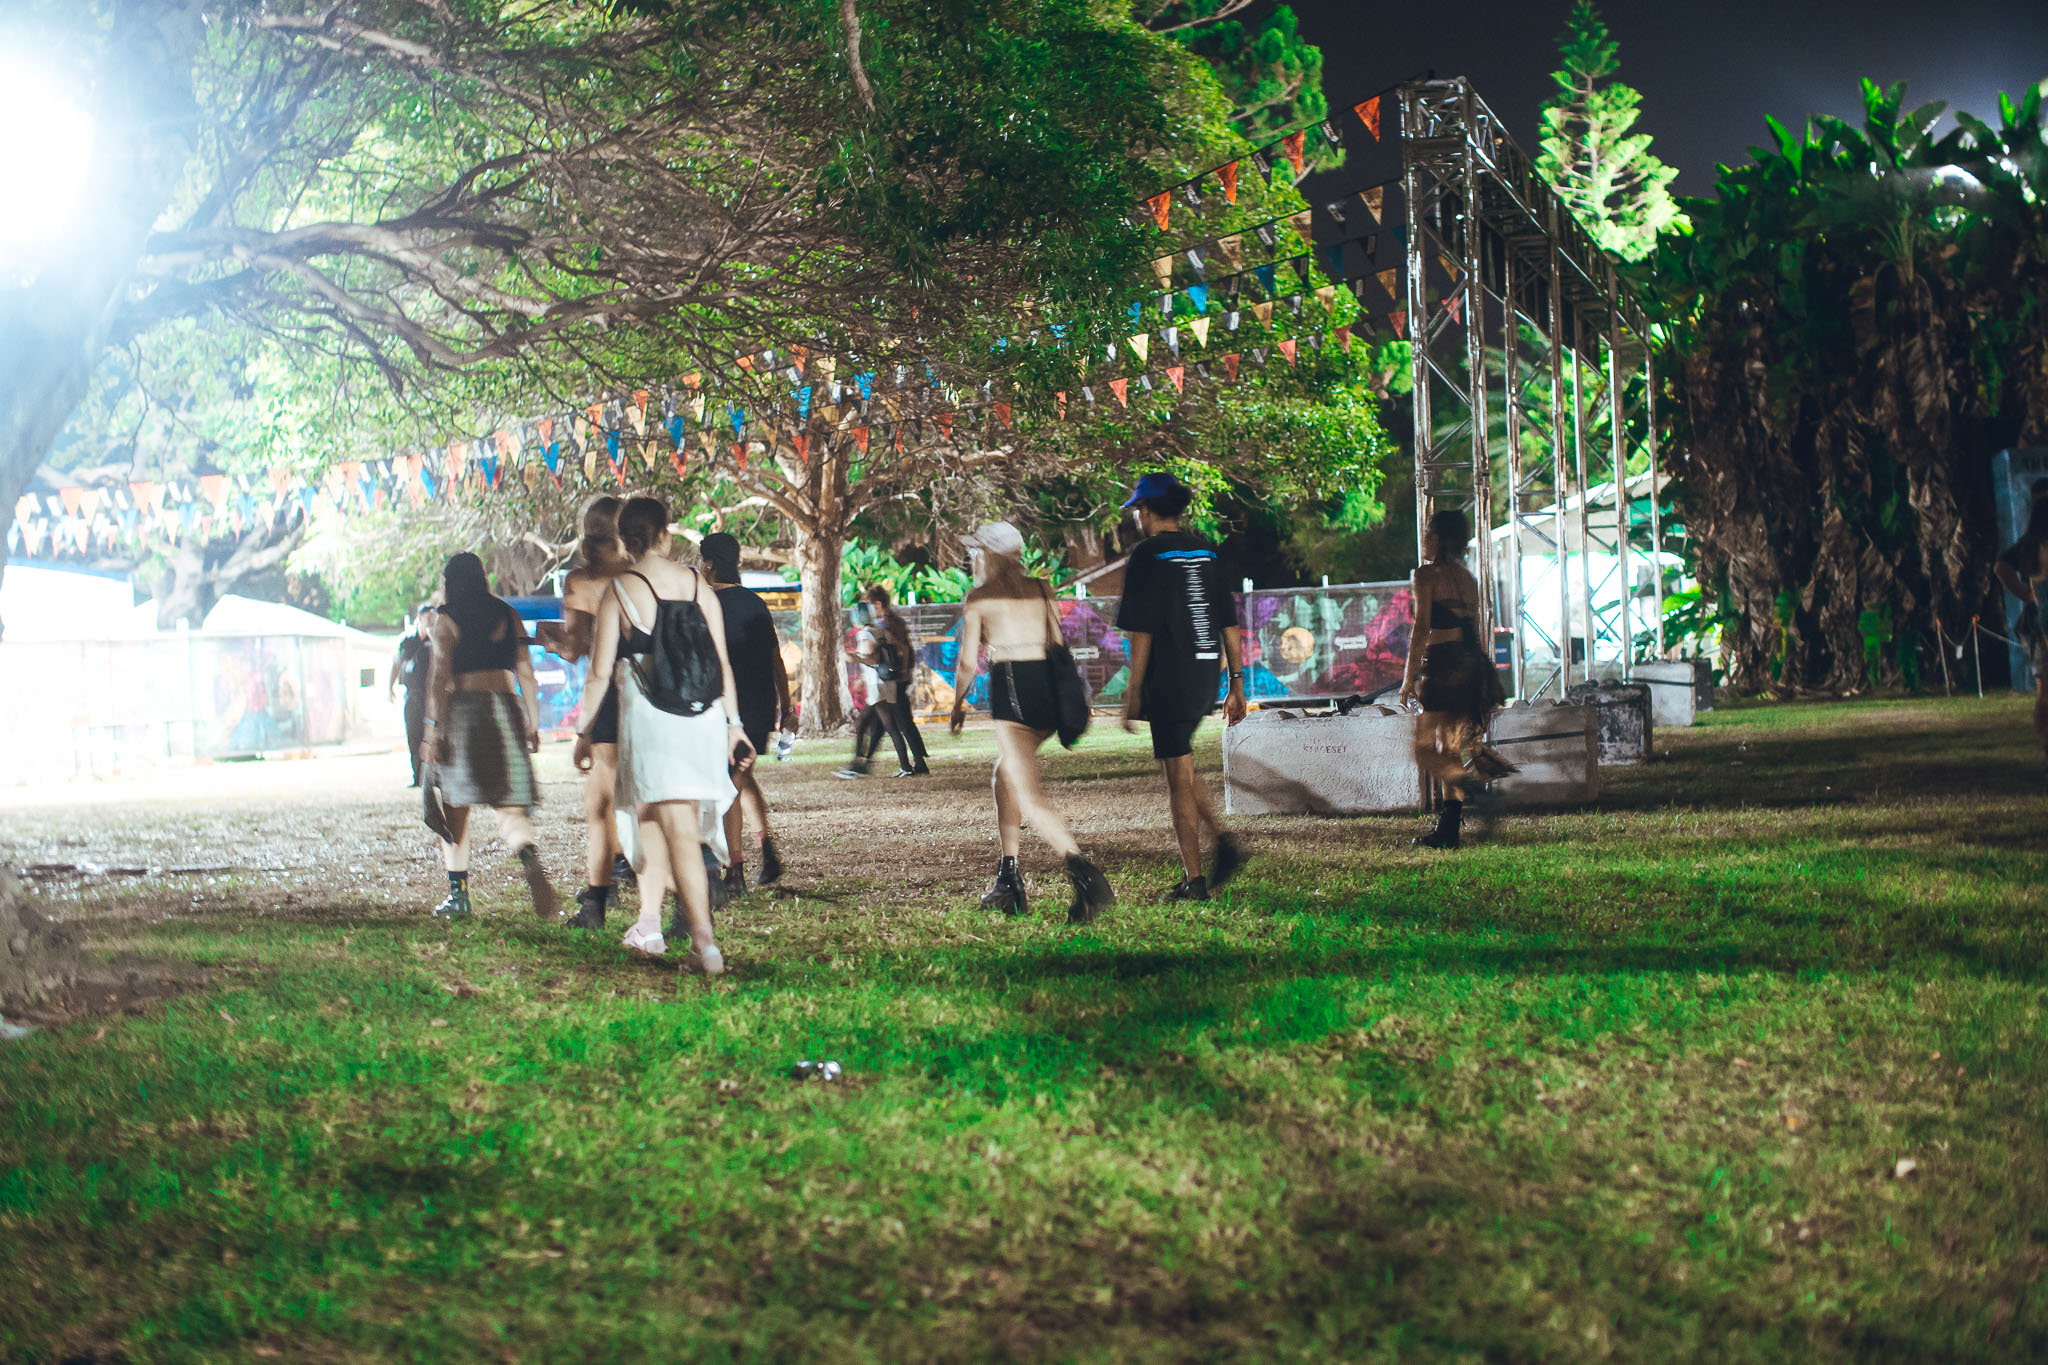 laneway_photo-by-oliver-minnett-02295